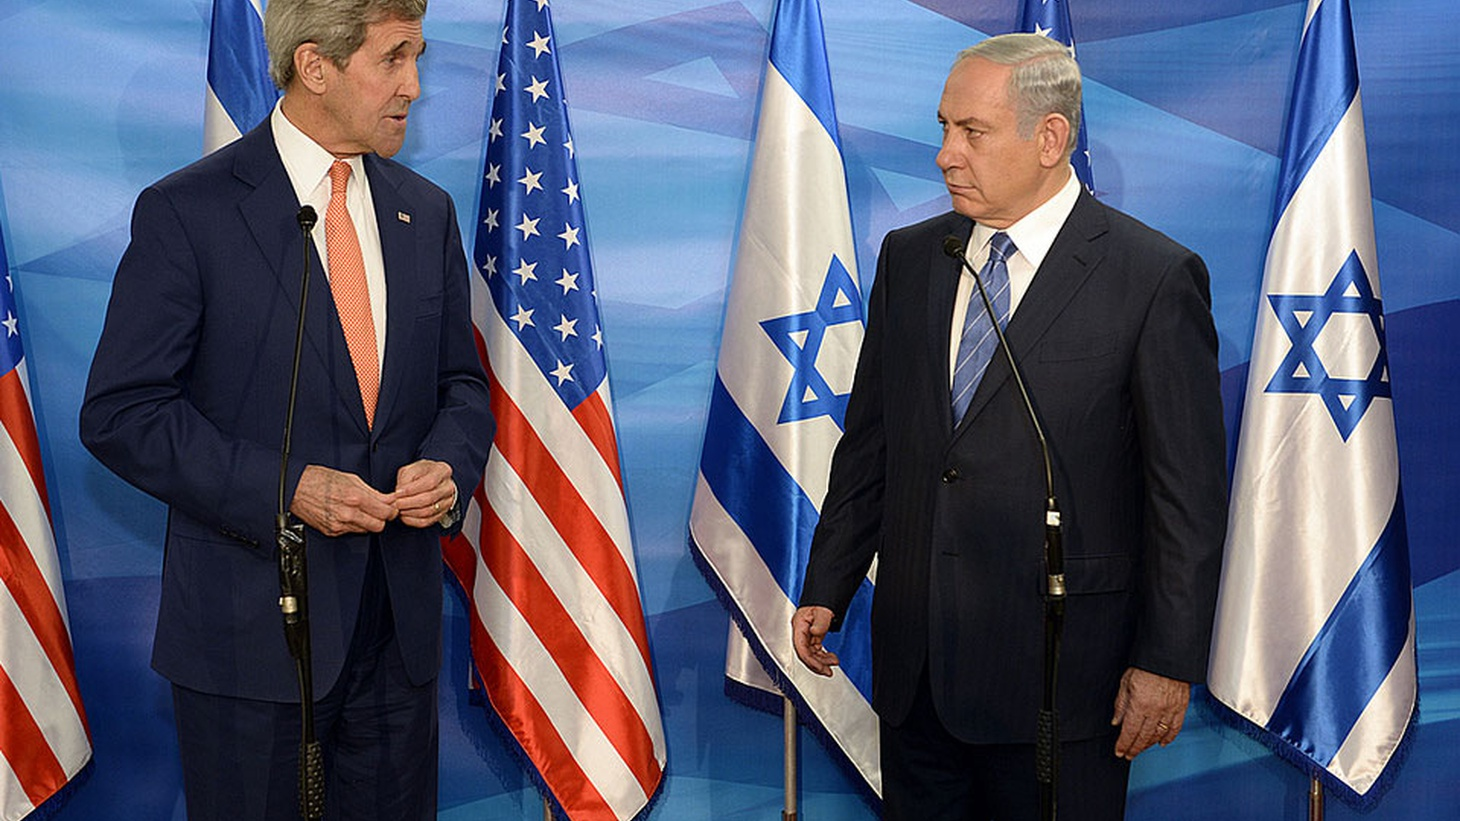 Israel is railing at the Obama administration for not vetoing a UN vote last week condemning settlements in the West Bank. In retaliation, it's pulling envoys and advancing plans for new settlements in East Jerusalem, where Palestinians envision a future capital. Guest host Barbara Bogaev talks about the Kerry plan, gets reaction from Jerusalem, and considers where US-Middle East policy is headed under the Trump Administration.